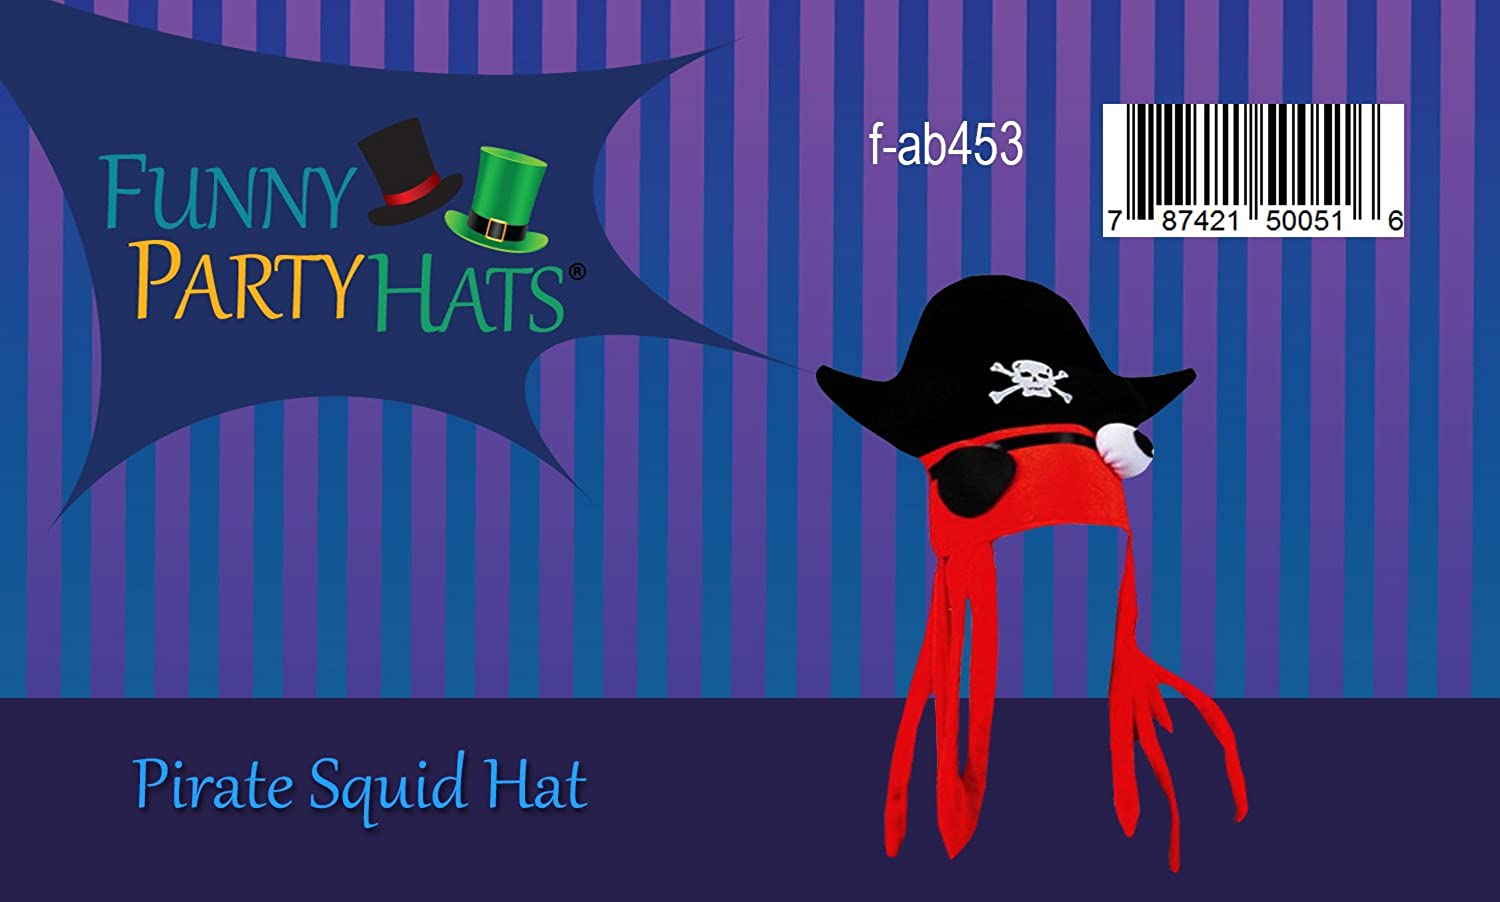 12760a23901 Amazon.com  Cool Pirate Squid Hat by Funny Party hats  Clothing